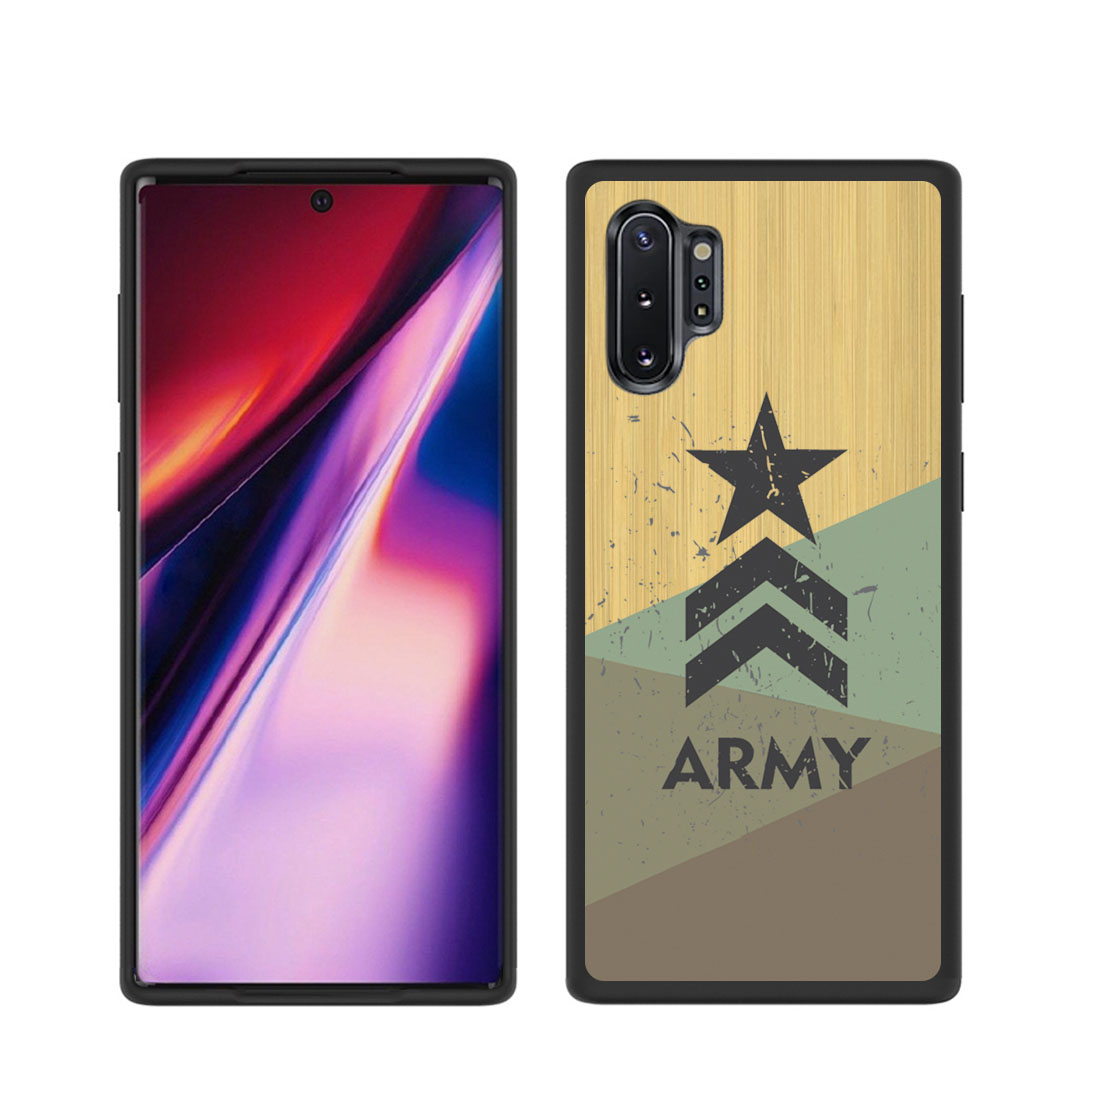 FORCELL BAMBOO kryt Samsung Galaxy Note 10 Plus ARMY (072)